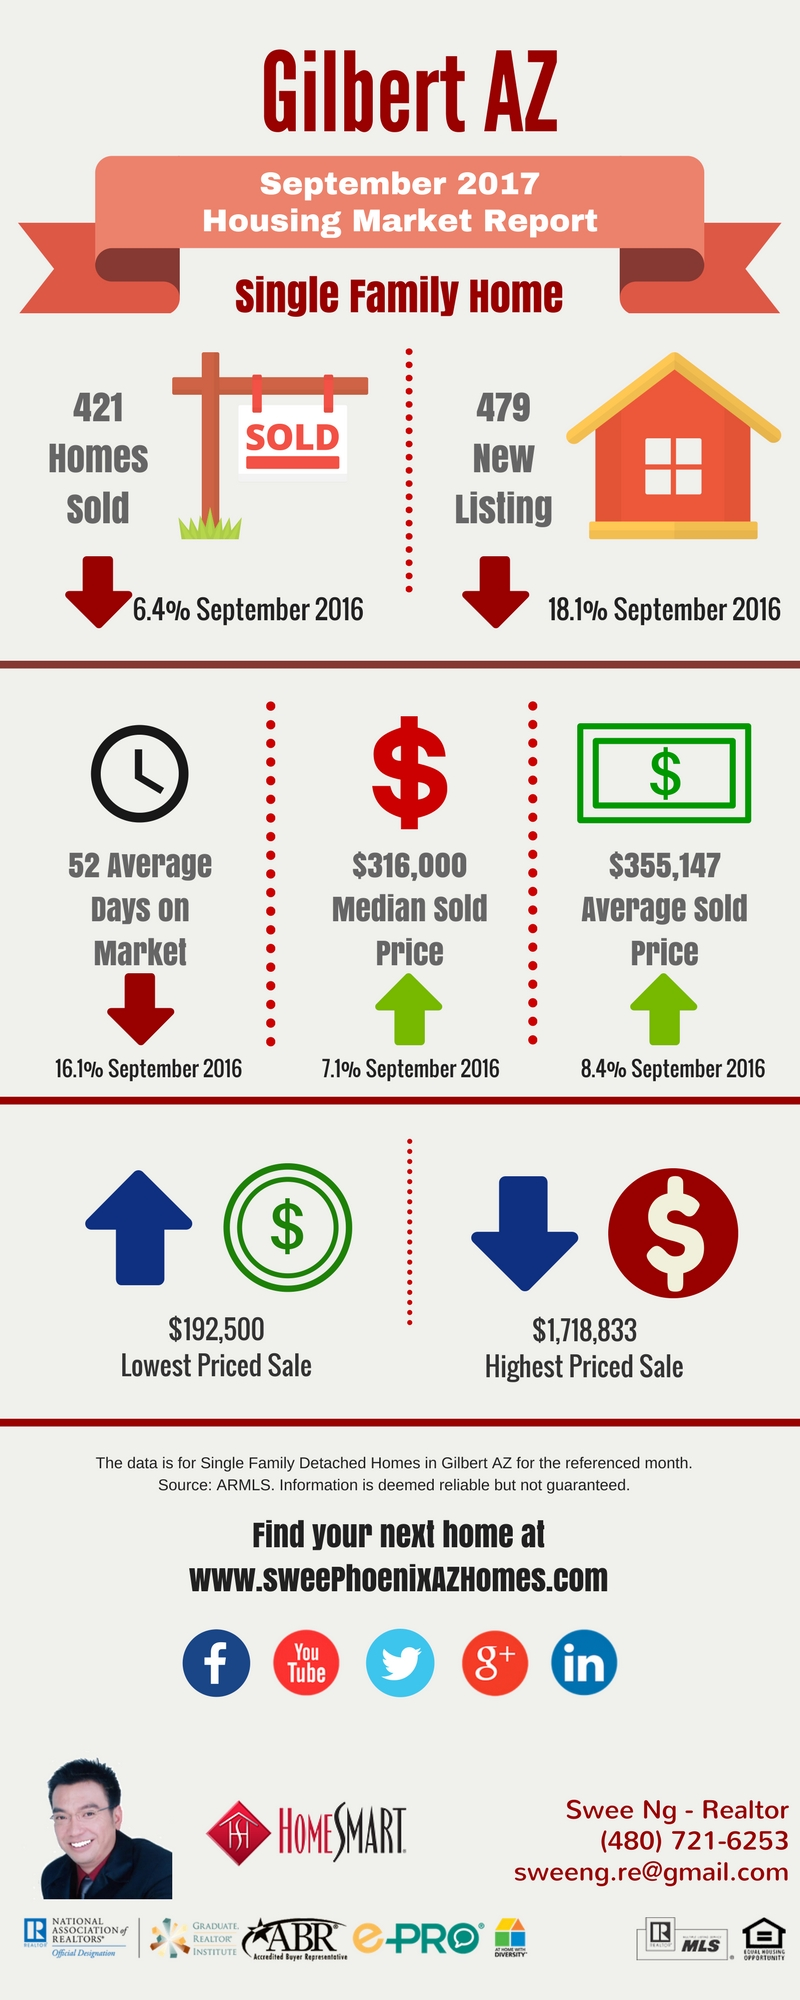 Gilbert AZ Housing Market Trends Report September 2017 by Swee Ng, Real Estate and House Value